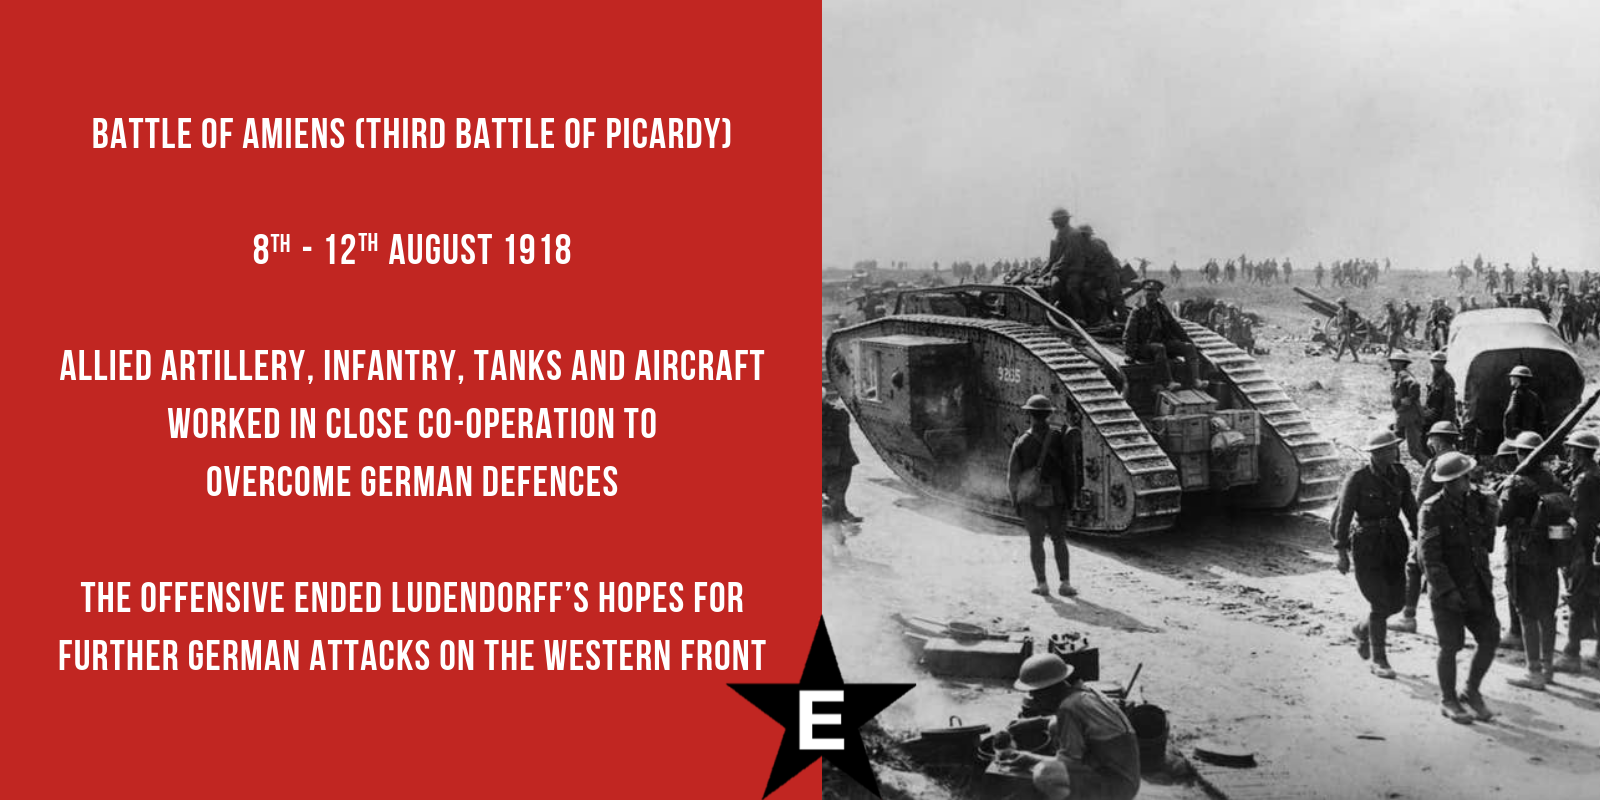 Onthisday The Allies Launched A Major Ww1 Offensive